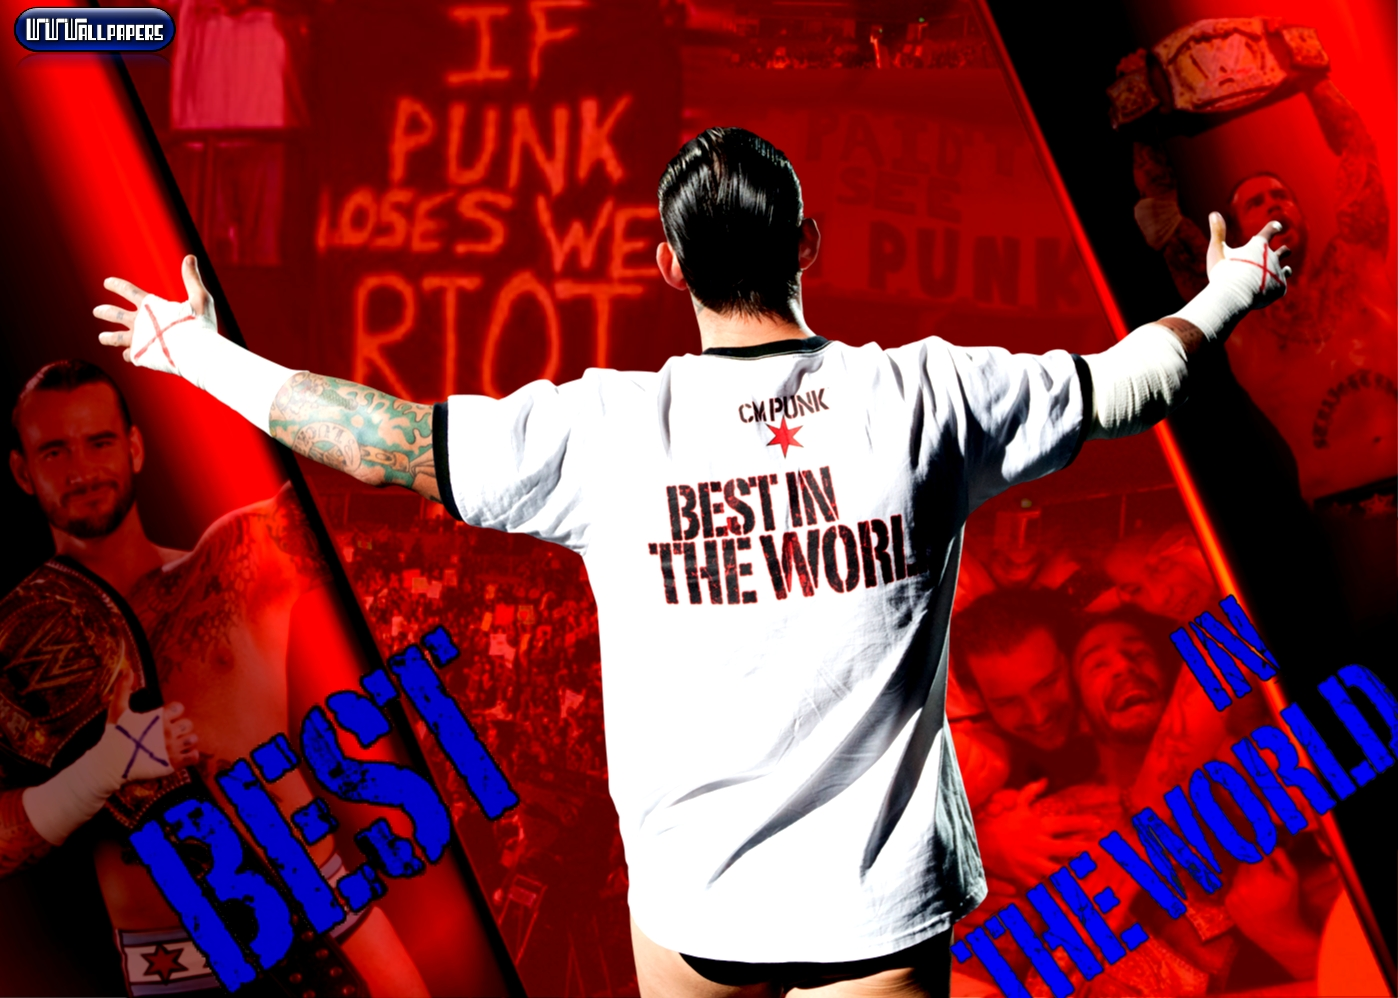 http://3.bp.blogspot.com/-NnbJsM63q8s/Tt1GQSJp3gI/AAAAAAAABfA/10_mUGXnByE/s1600/Cm+punk+wwe+wallpaper+best+world+champion+voice.jpg